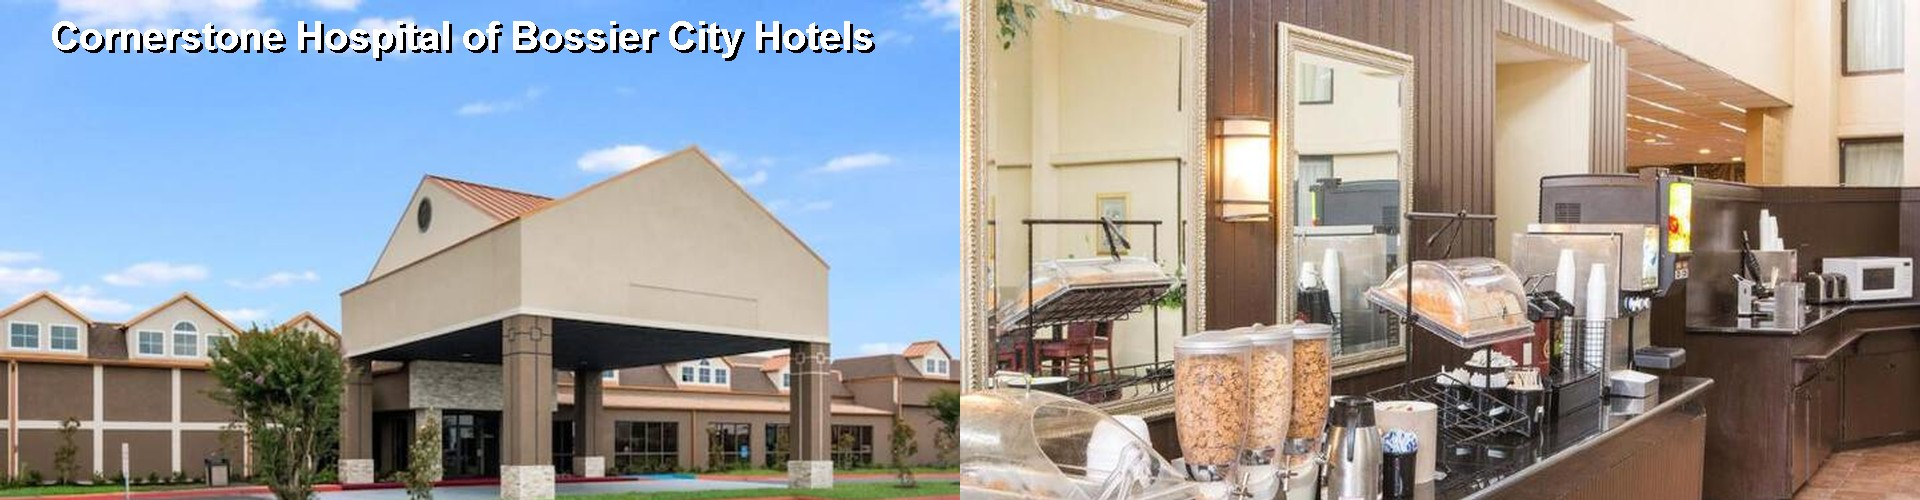 5 Best Hotels near Cornerstone Hospital of Bossier City